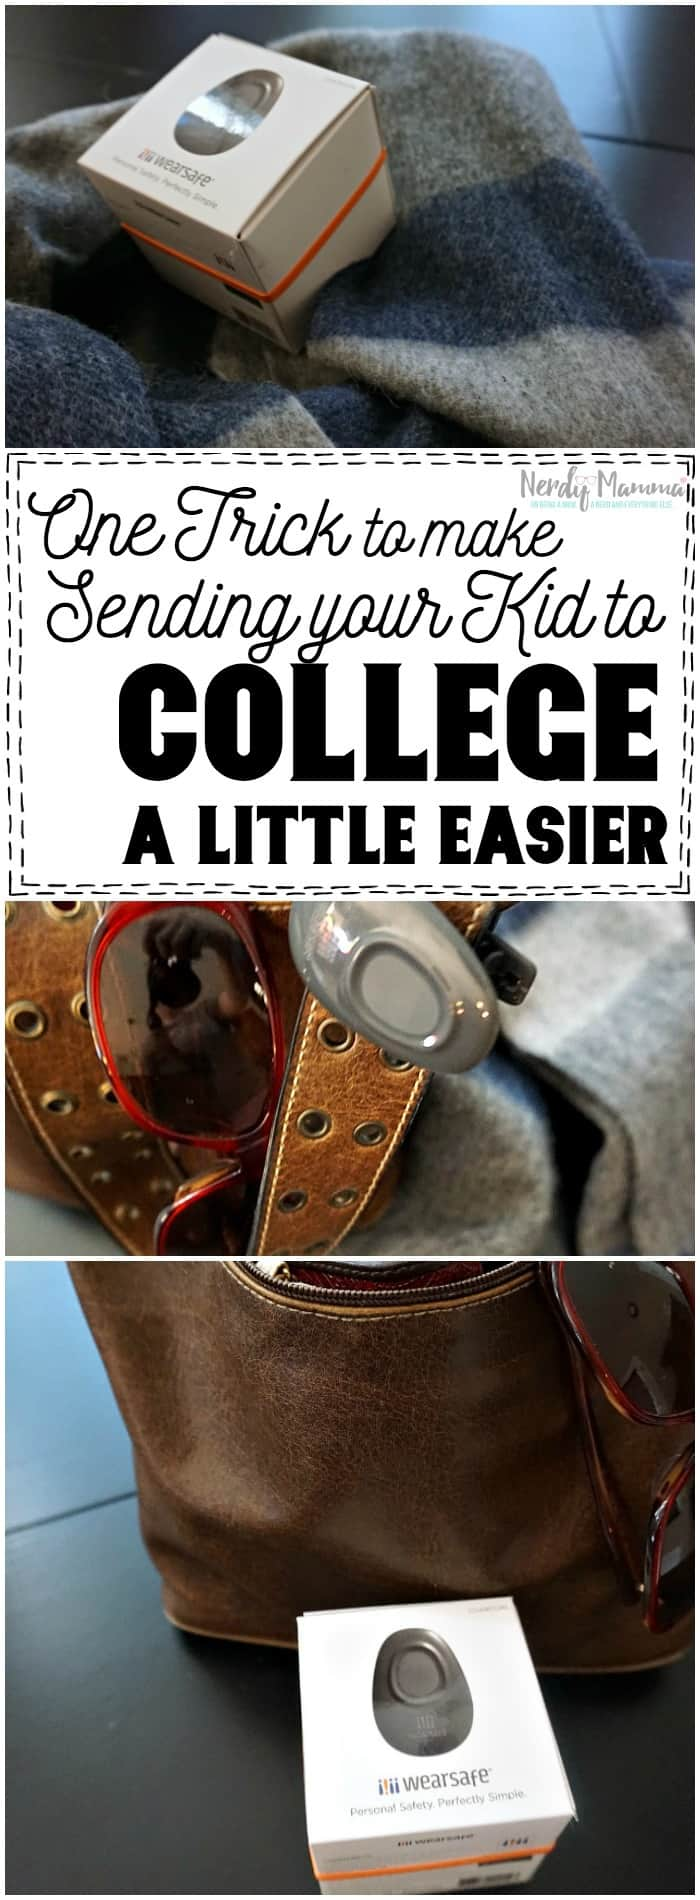 This One Trick for Making Sending Your Kid to College Easier So. SMART! I love it!